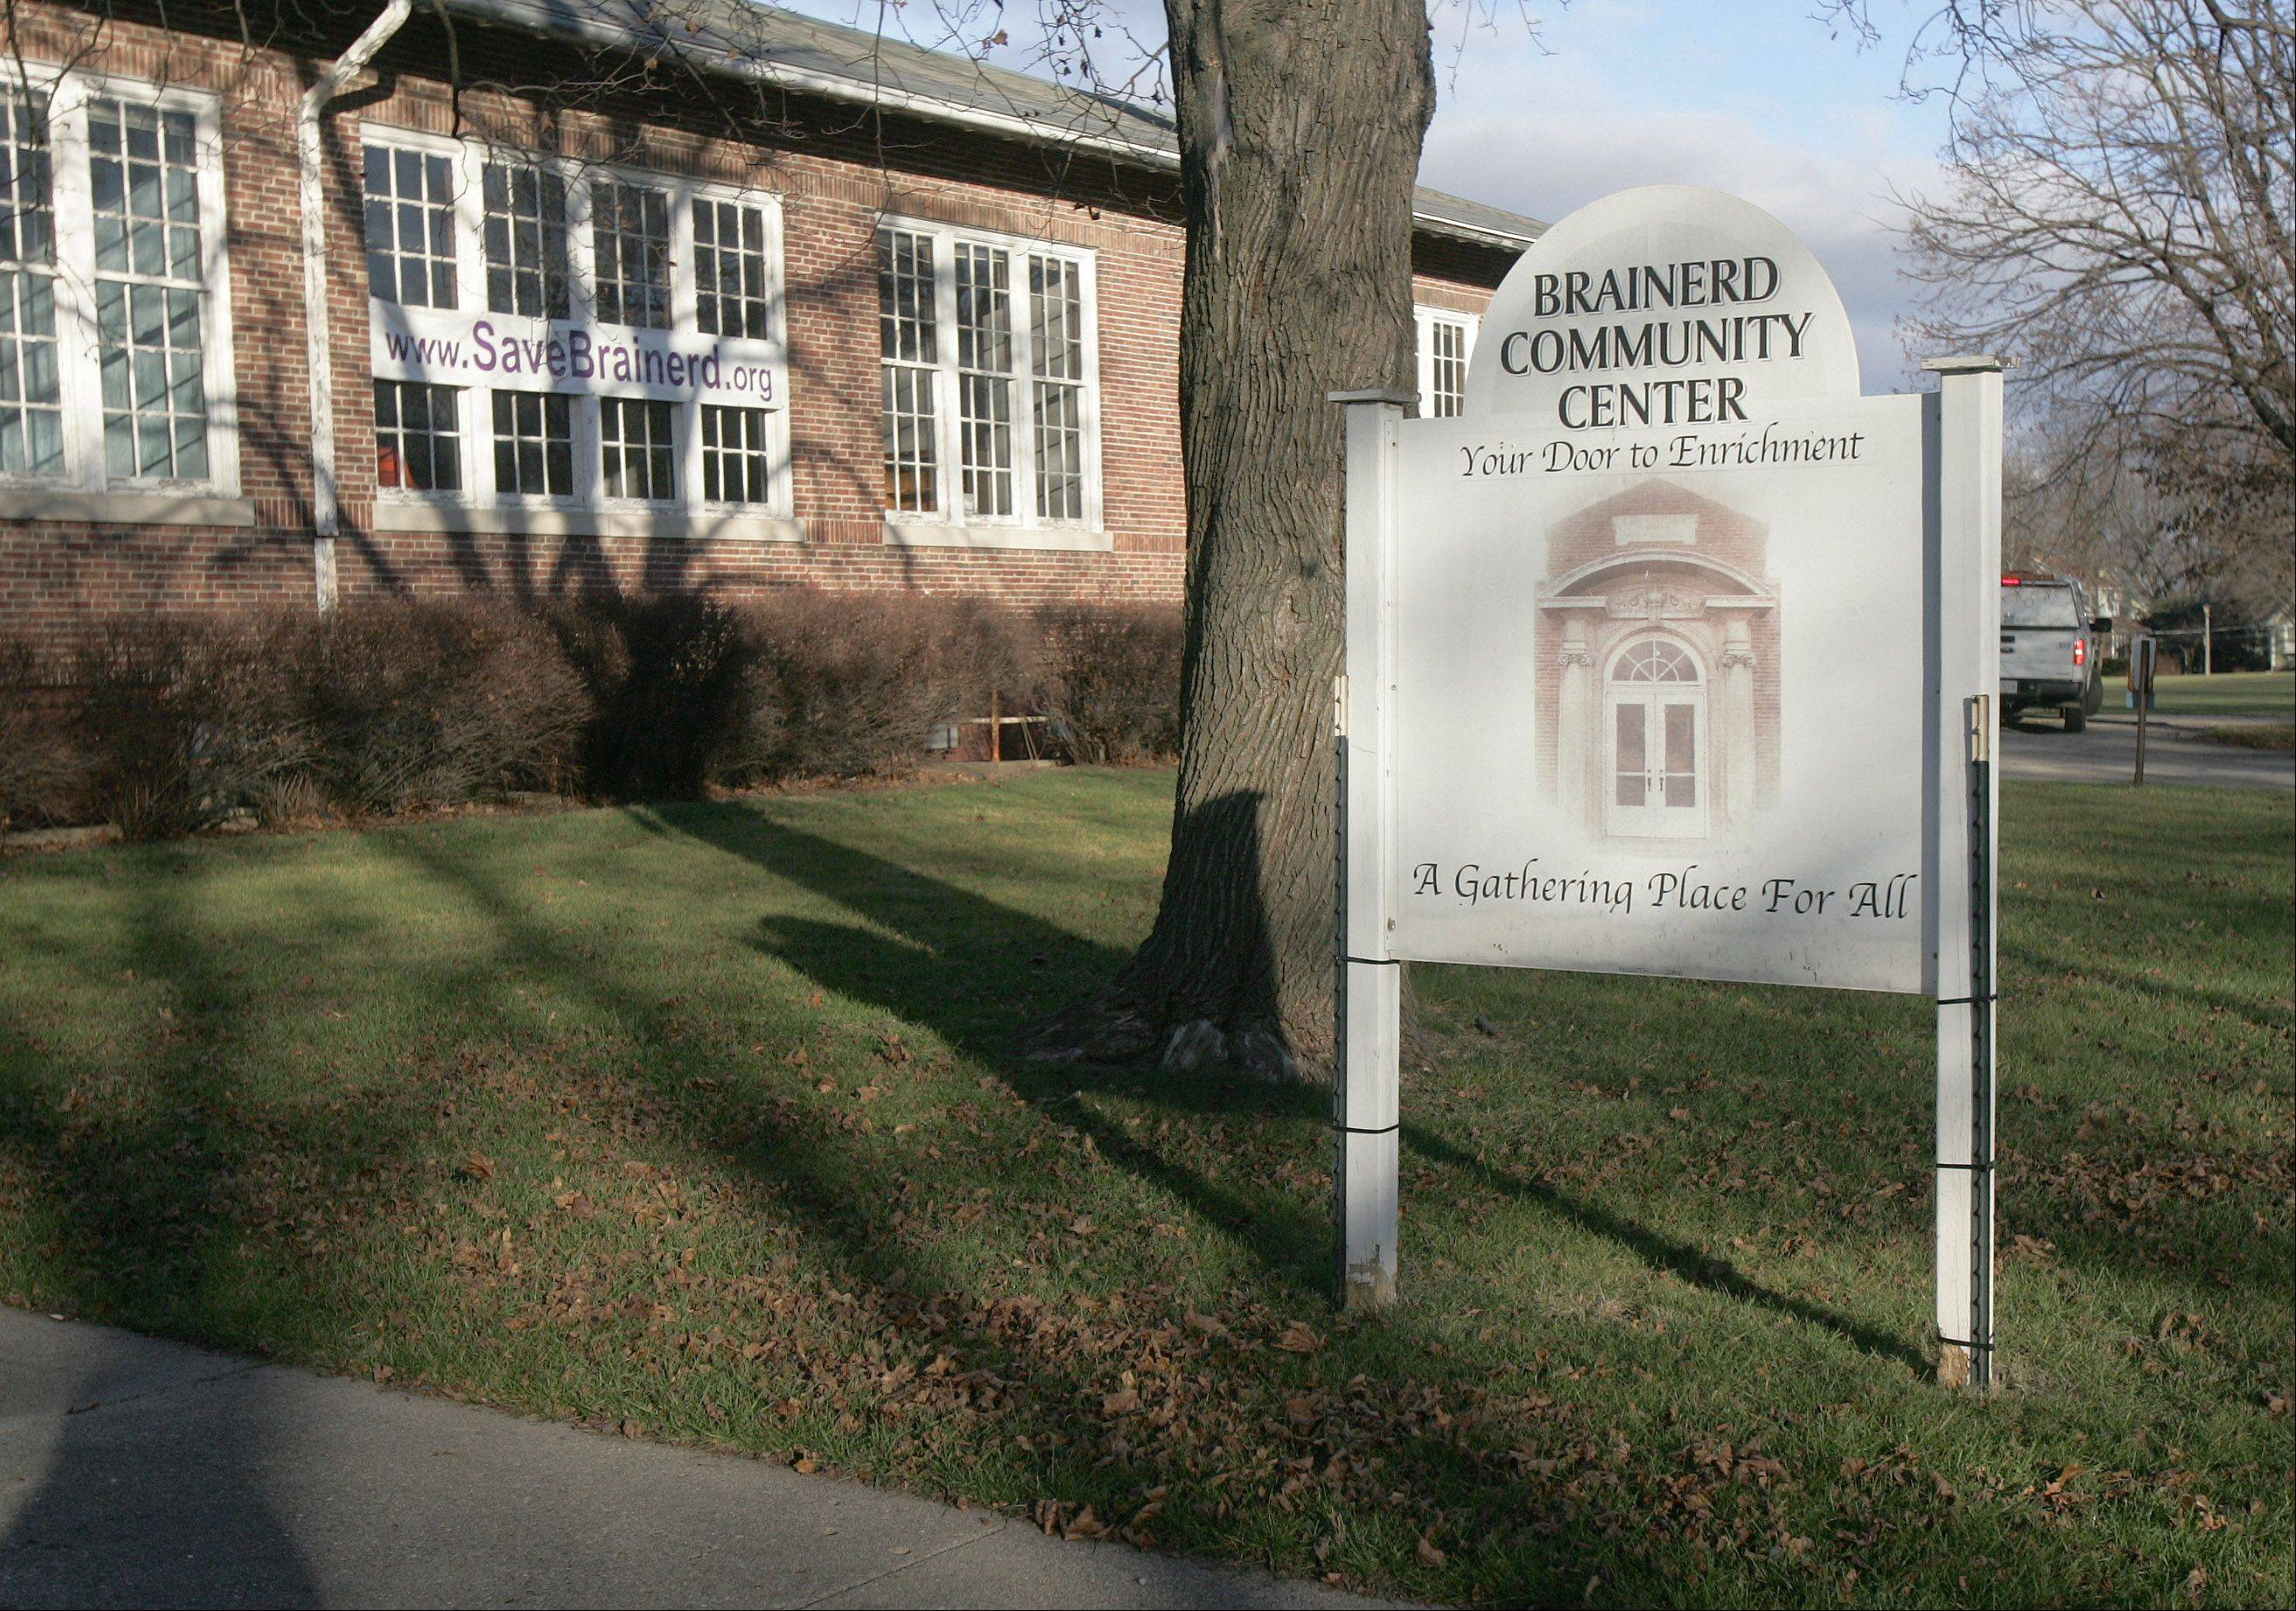 Libertyville voters won't be asked whether they support a tax hike to convert the Brainerd building to a community center until March 2014.